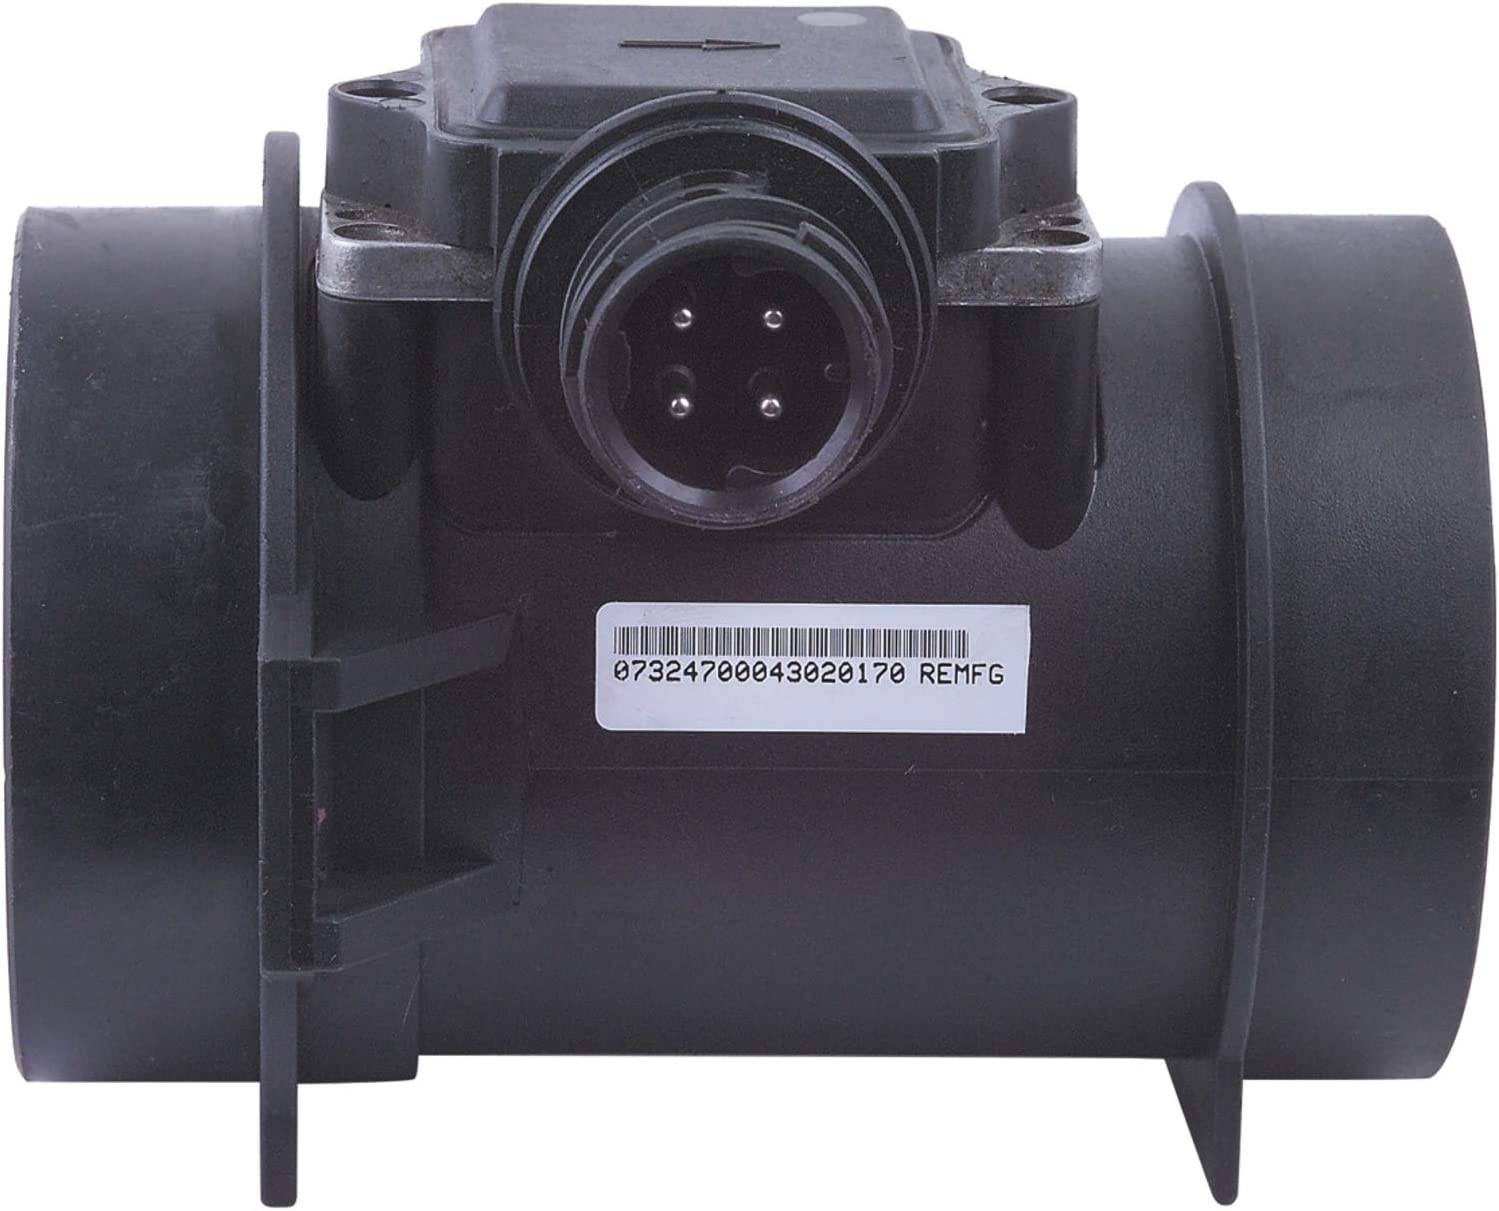 Max 69% OFF Cardone 74-10043 Remanufactured Mass Sensors Sales for sale MAFS Air Flow